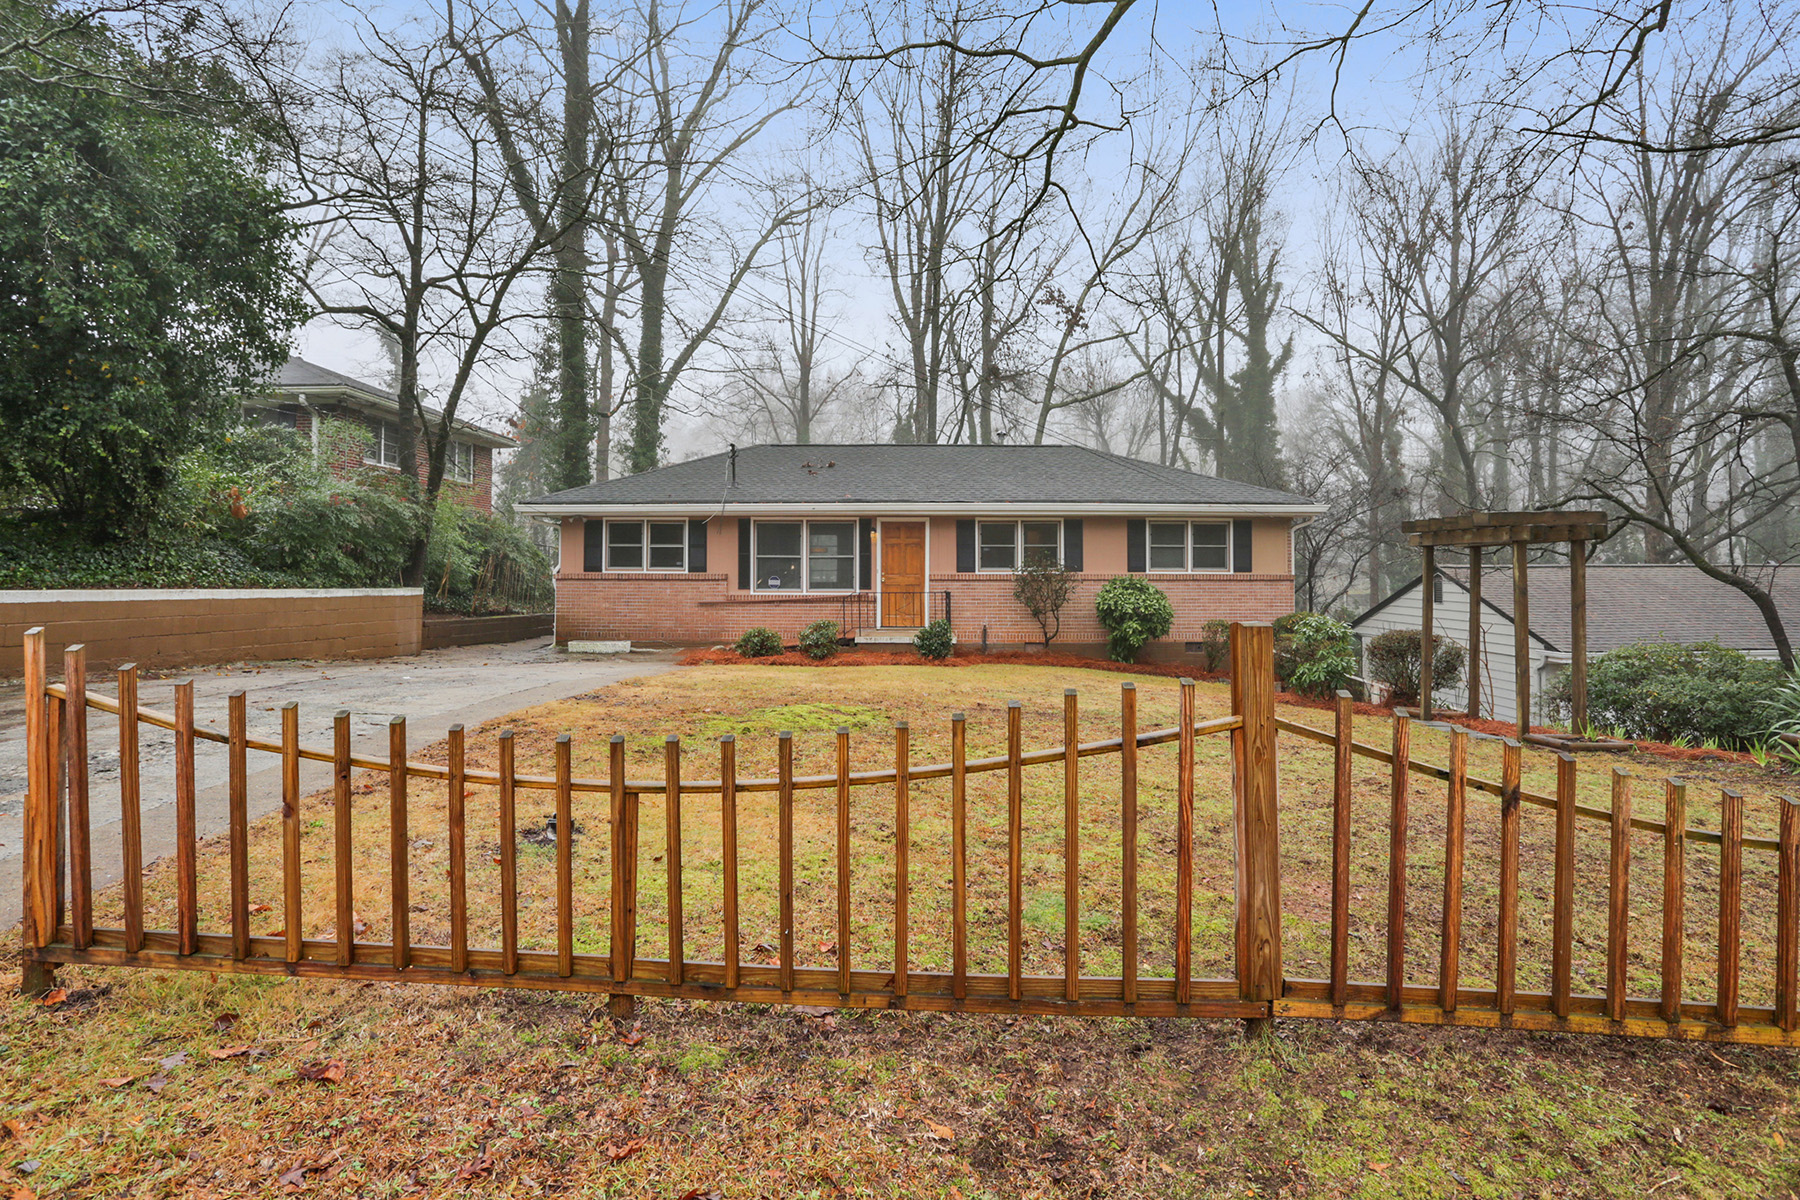 Single Family Home for Rent at Spacious Renovated Ranch 2965 Judylyn Drive Decatur, Georgia 30033 United States